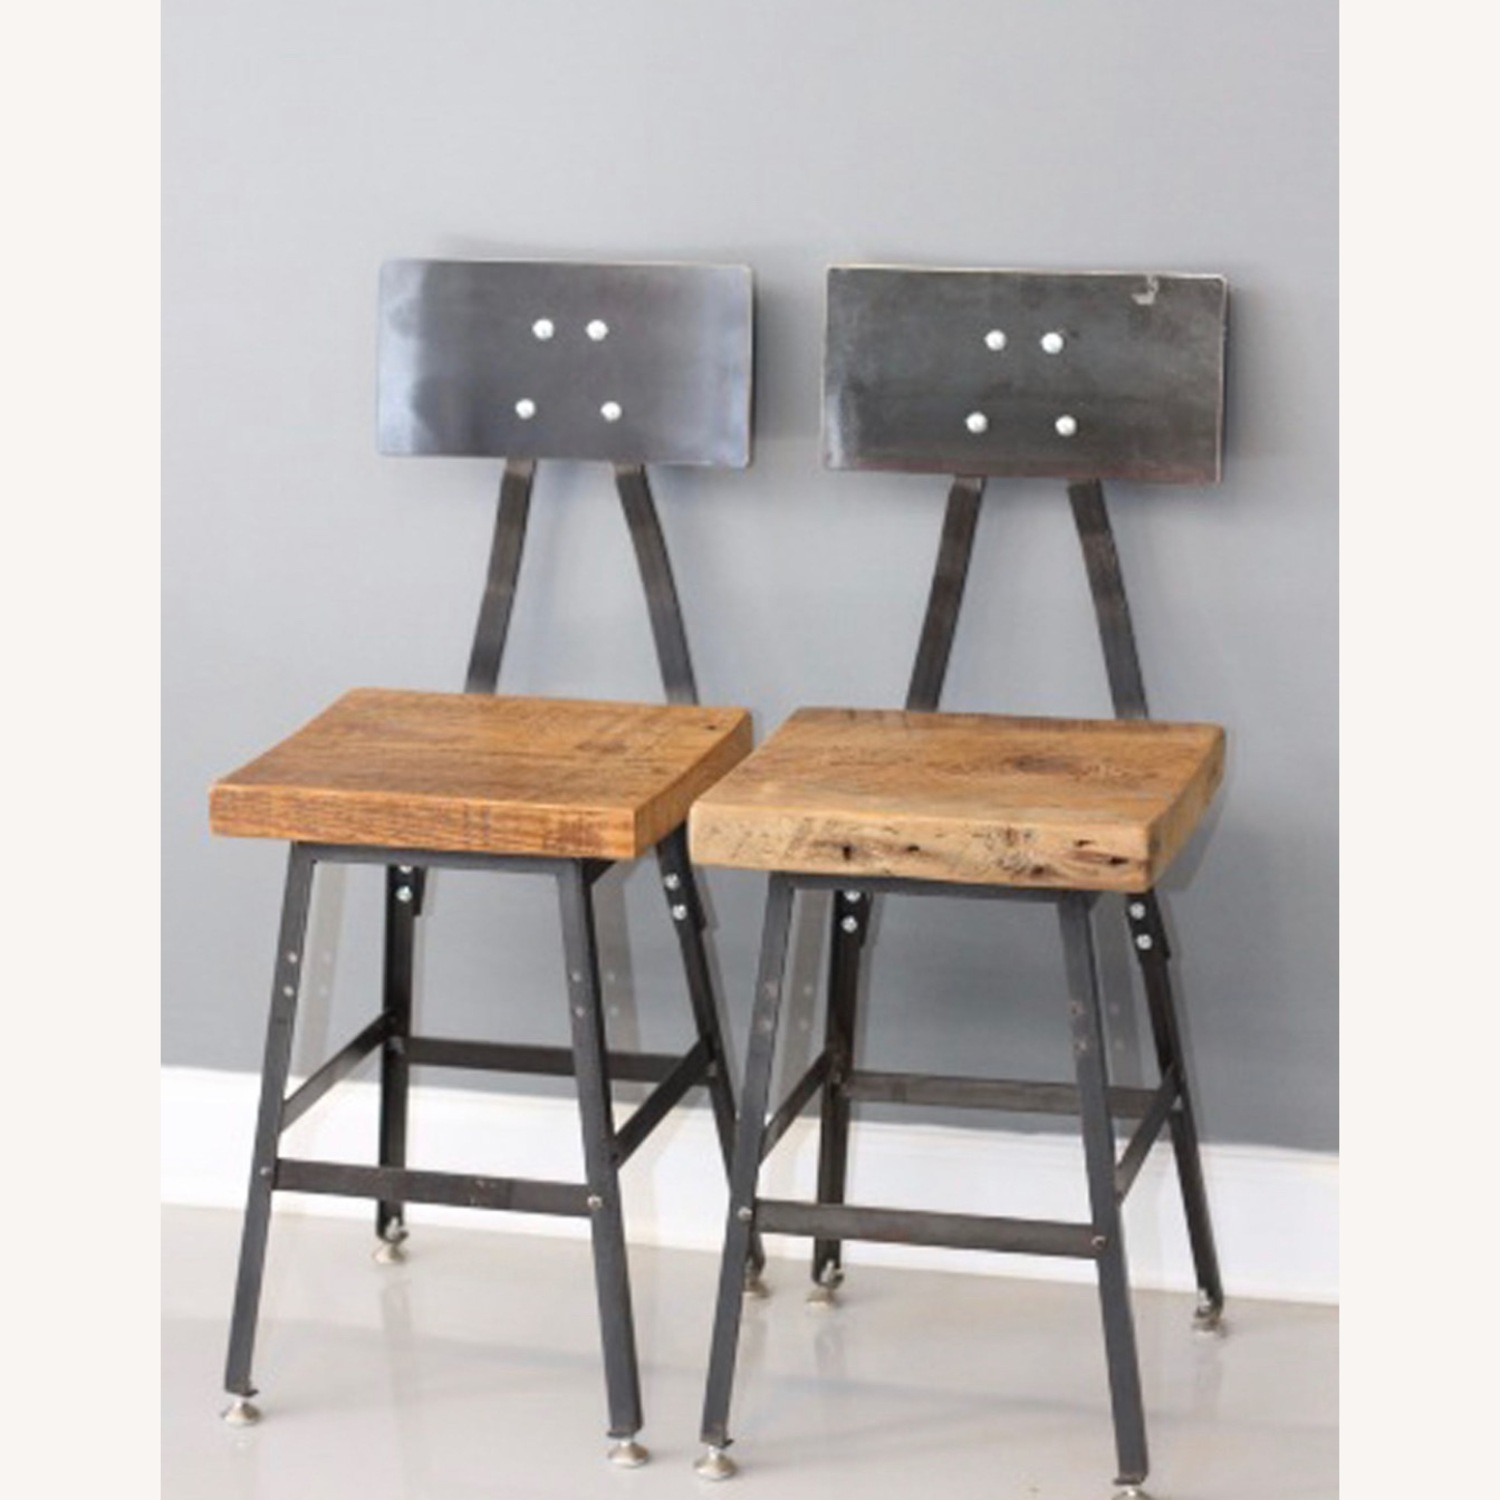 Handmade Reclaimed Solid Wood Dining Chair Set - image-0